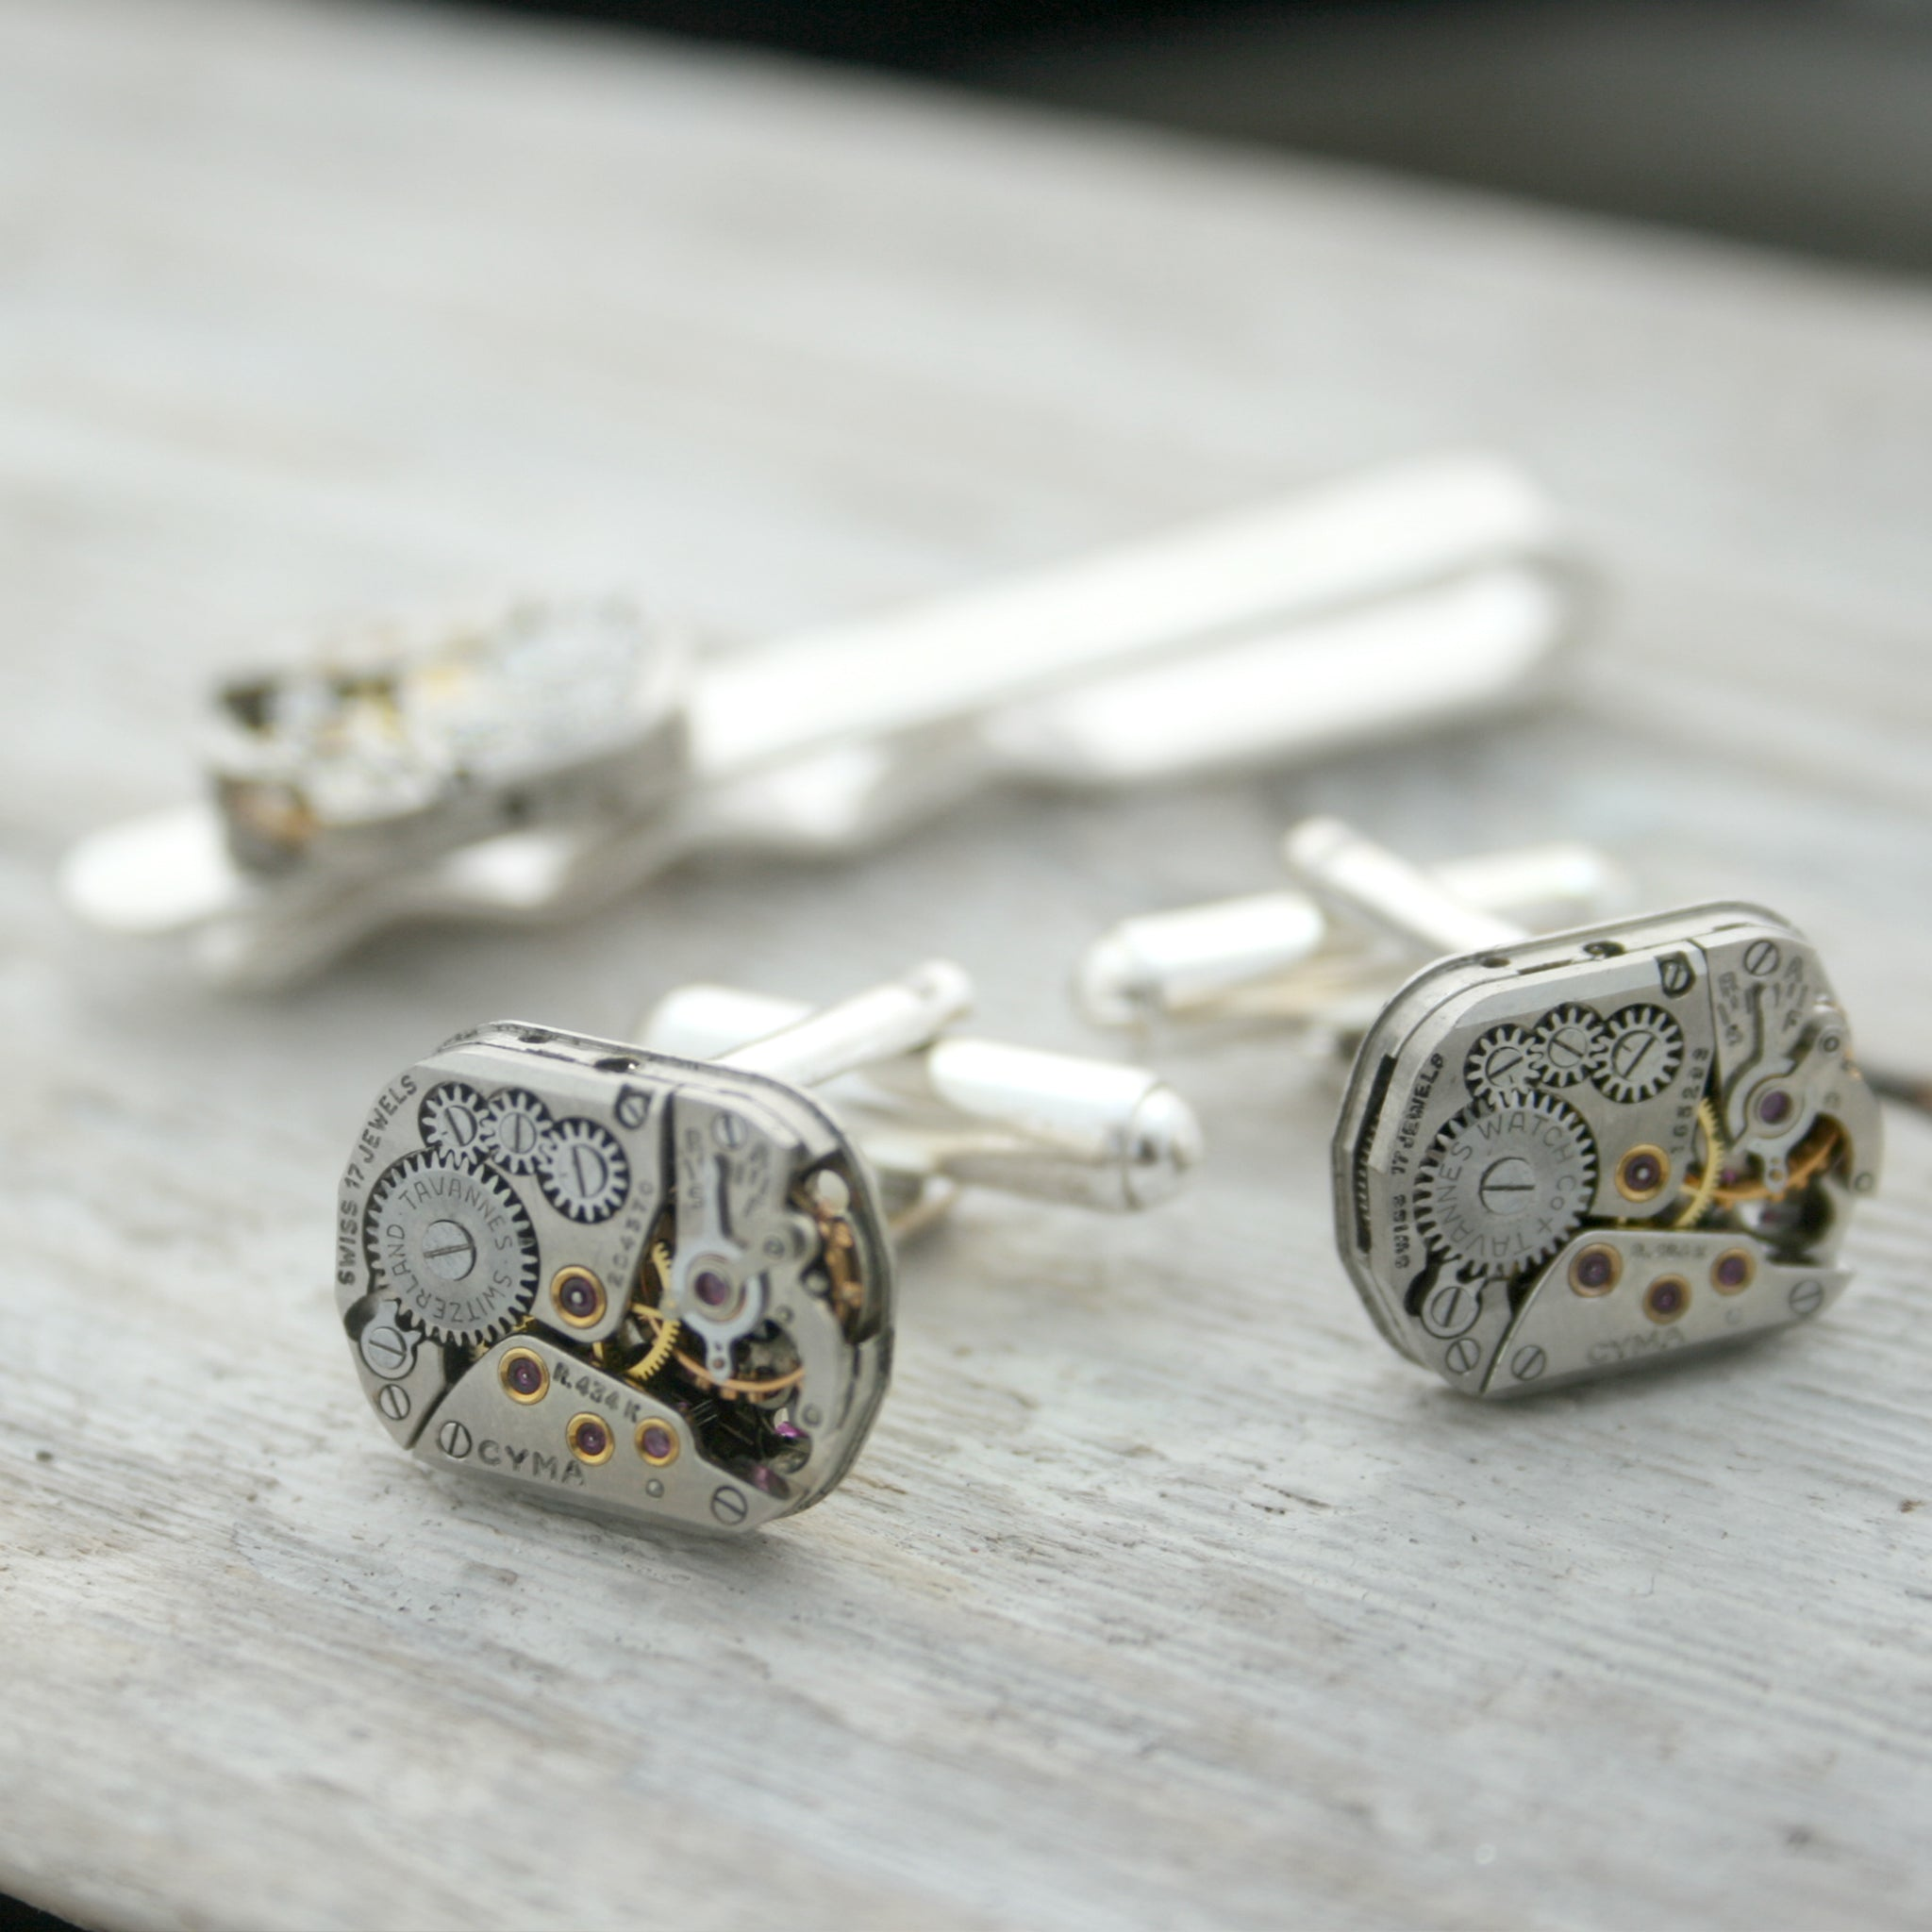 Sterling Tie Clip and Cufflinks Steampunk Set